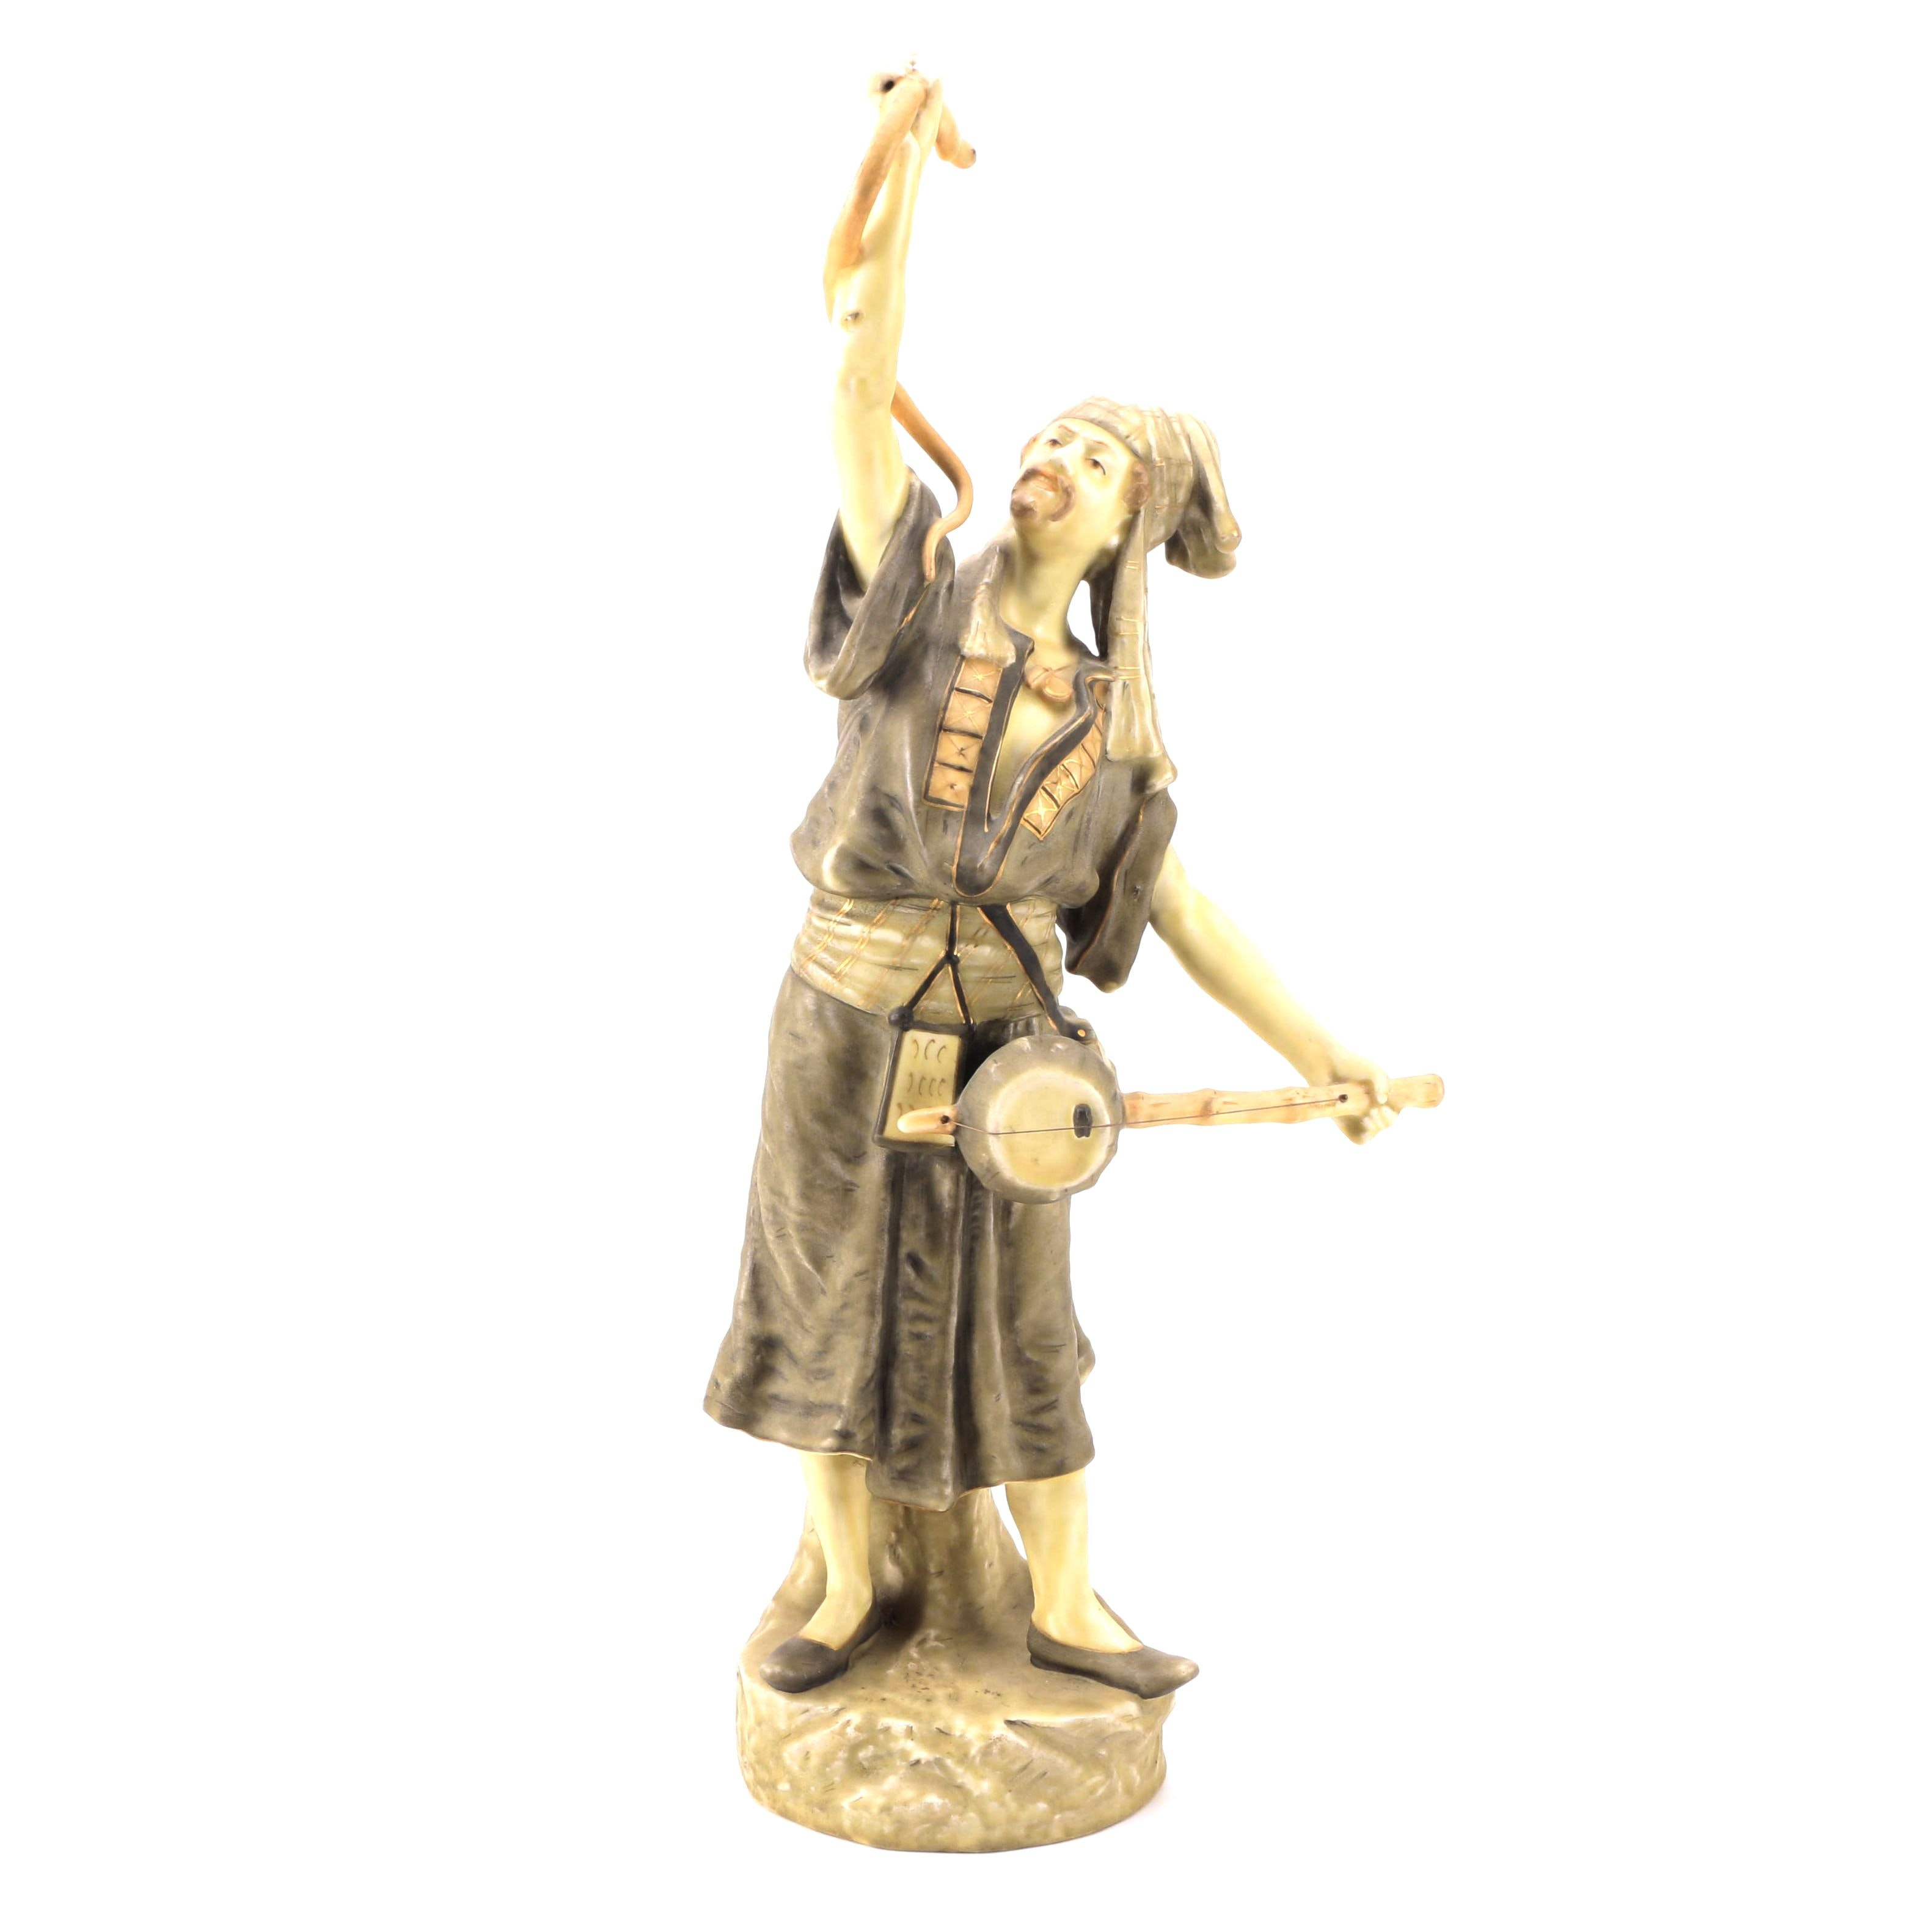 East Asian Style Ceramic Statue of Man Holding Snake